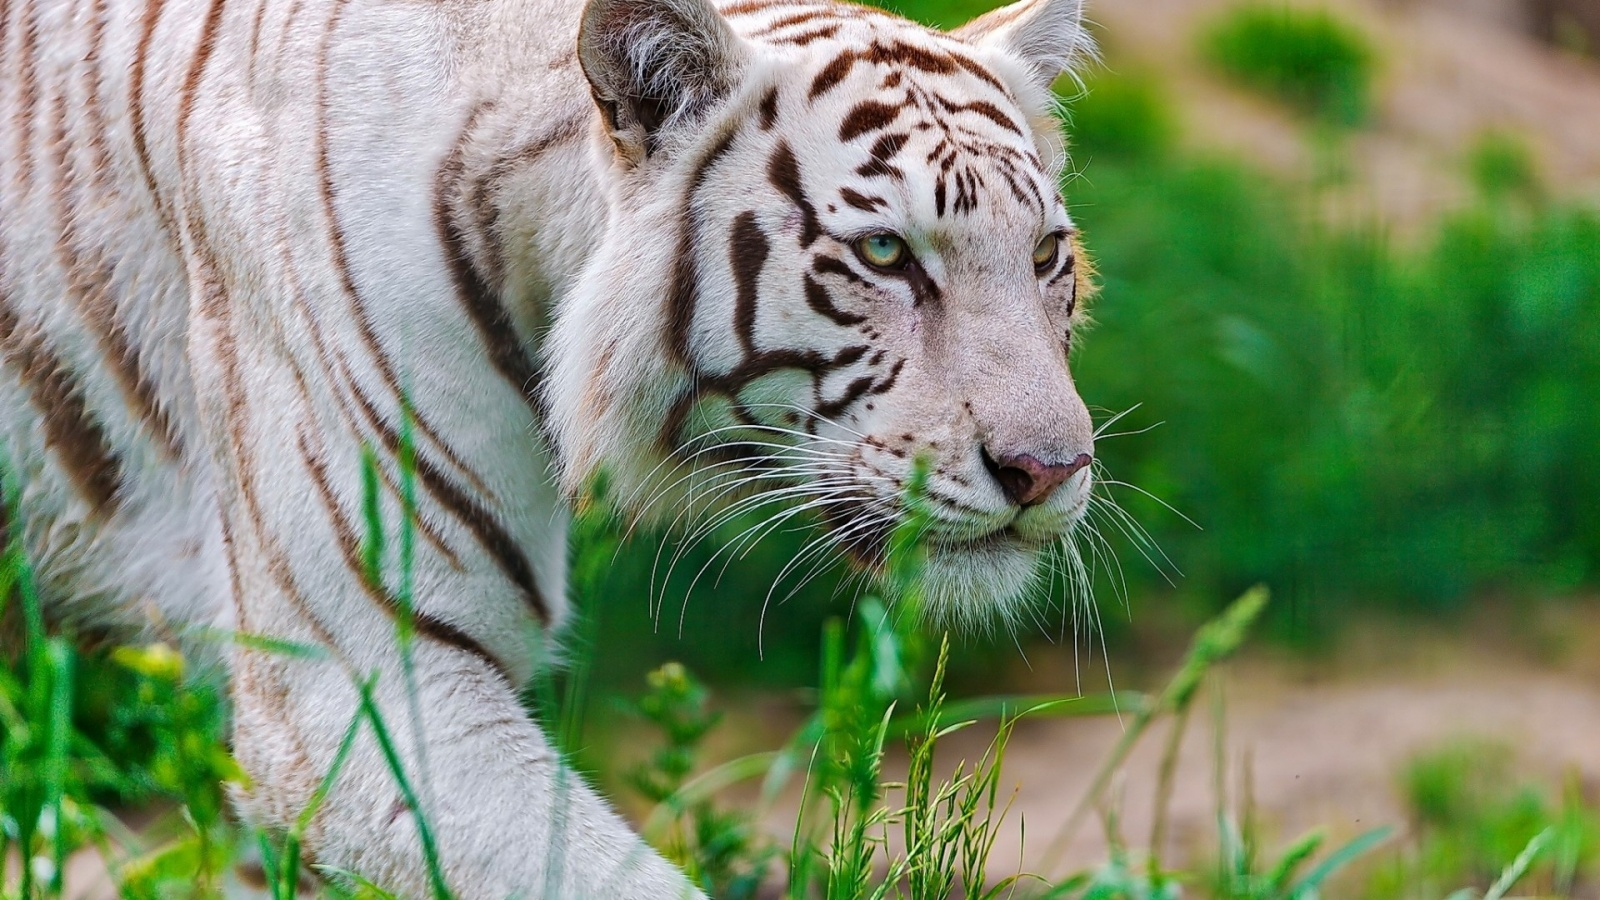 White Tigress Walking In The Grass